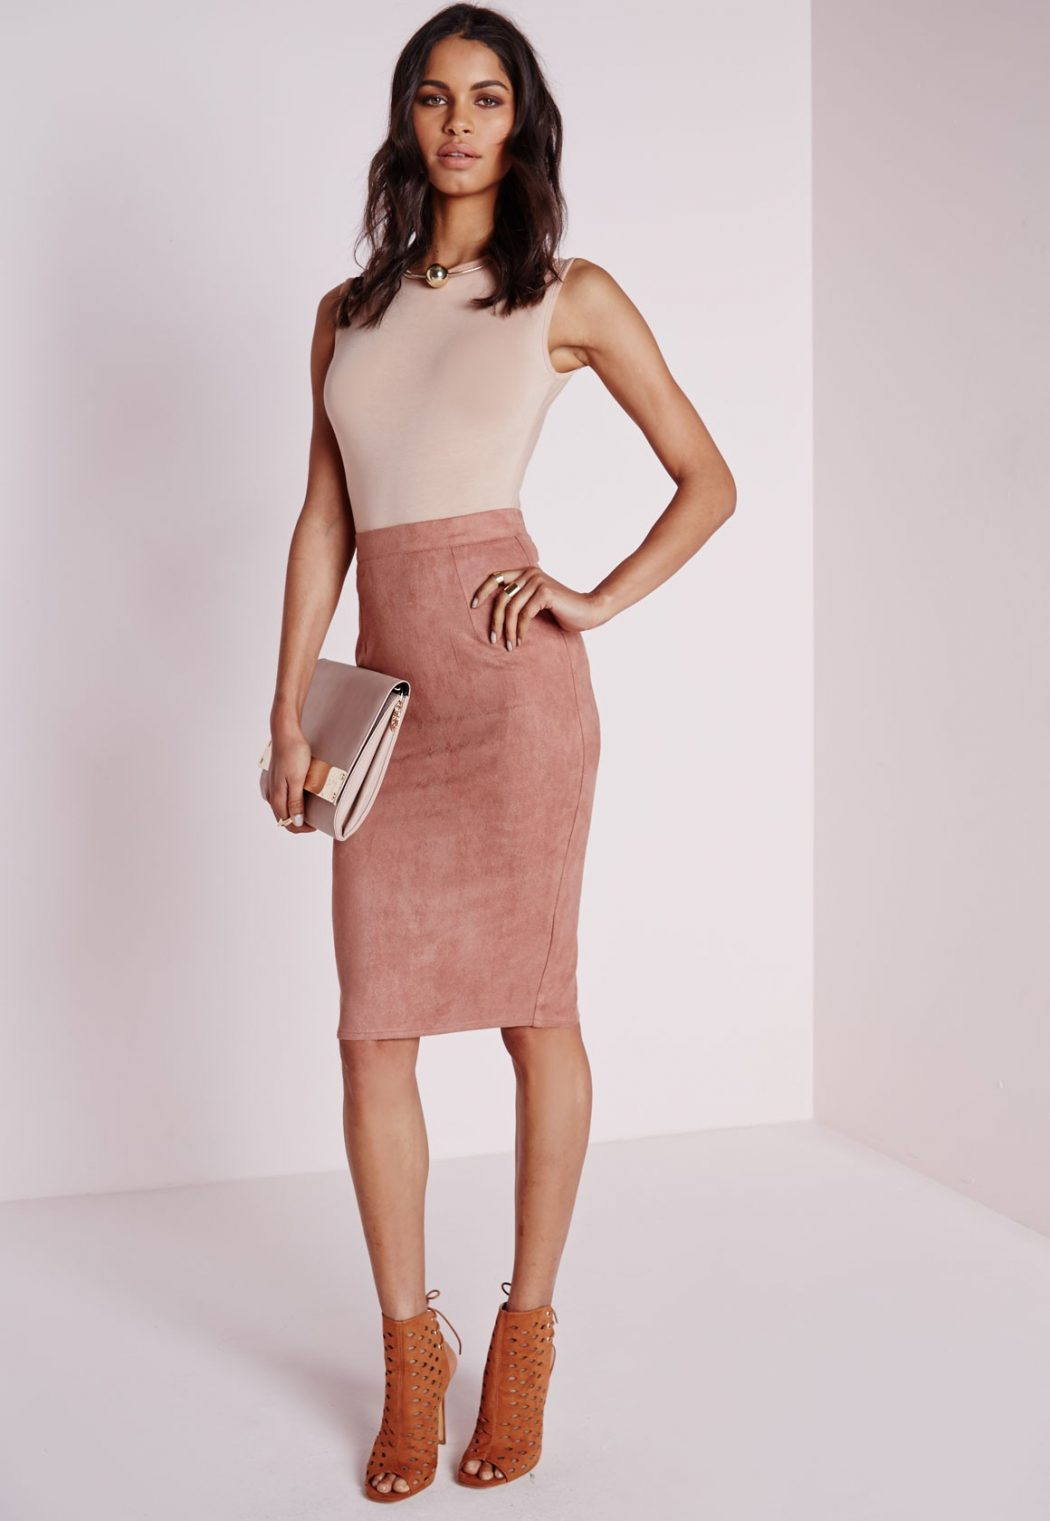 s4990079_daiane_07.05.15_hm_7890 25+ Women Engagement Outfit Ideas Coming in 2020